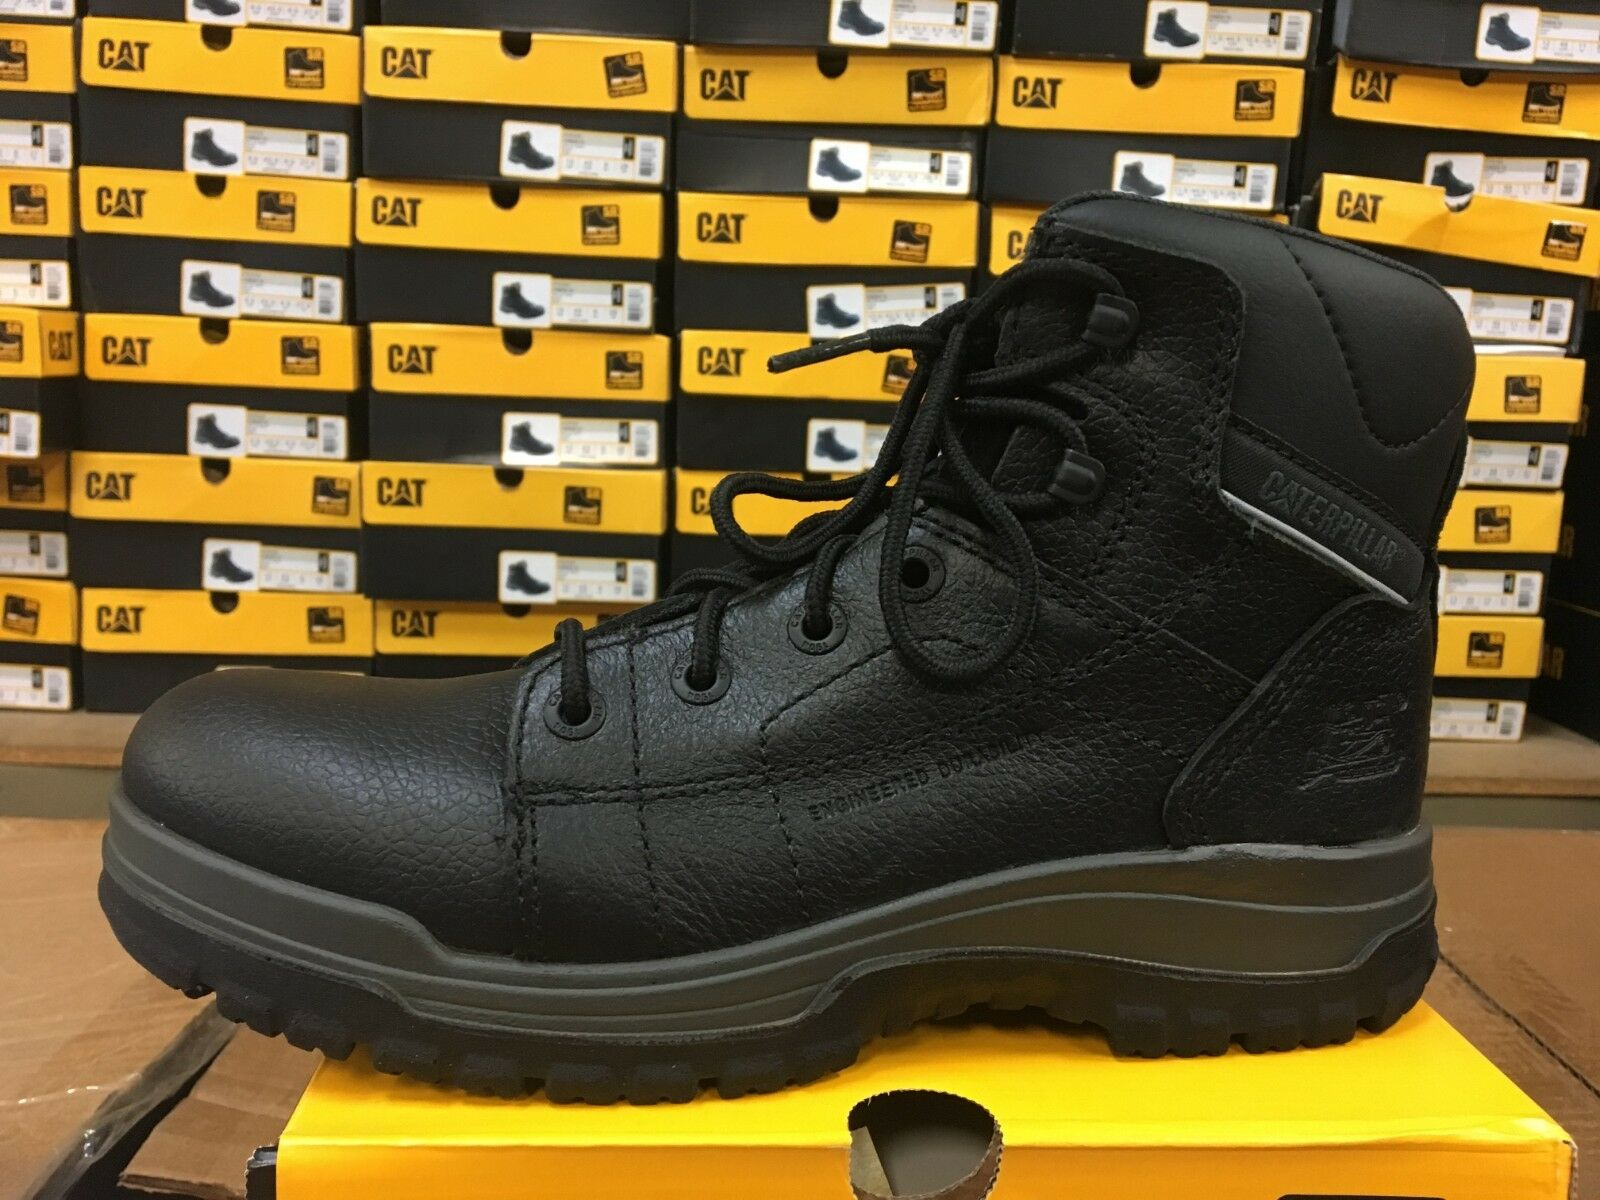 Caterpillar Dimen Hi  Mid Cut Boot Black leather  P73743  Slip Resistant   LO11